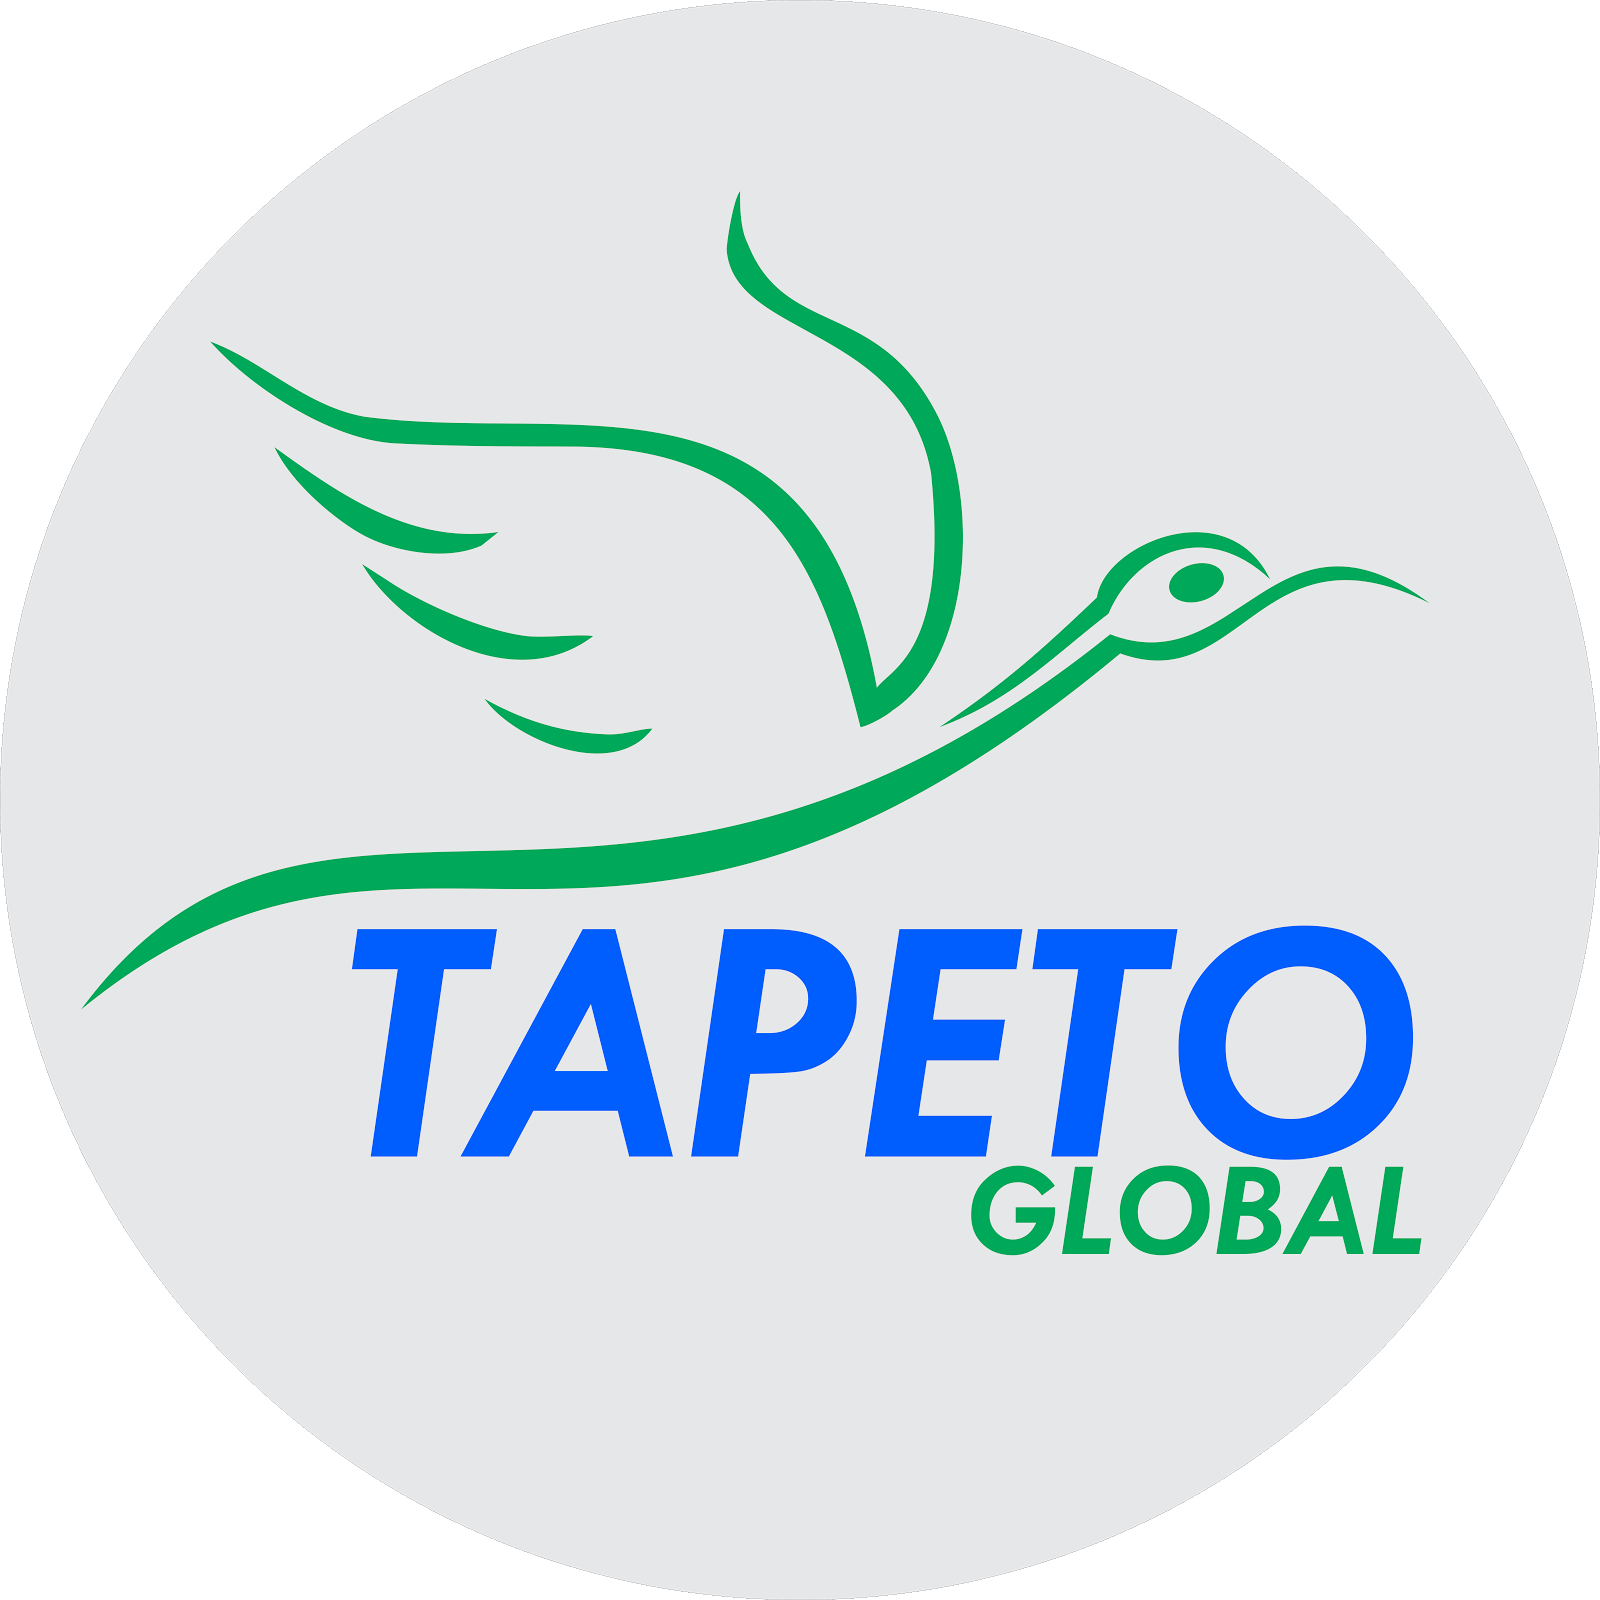 Tapeto Global Tour and Travel